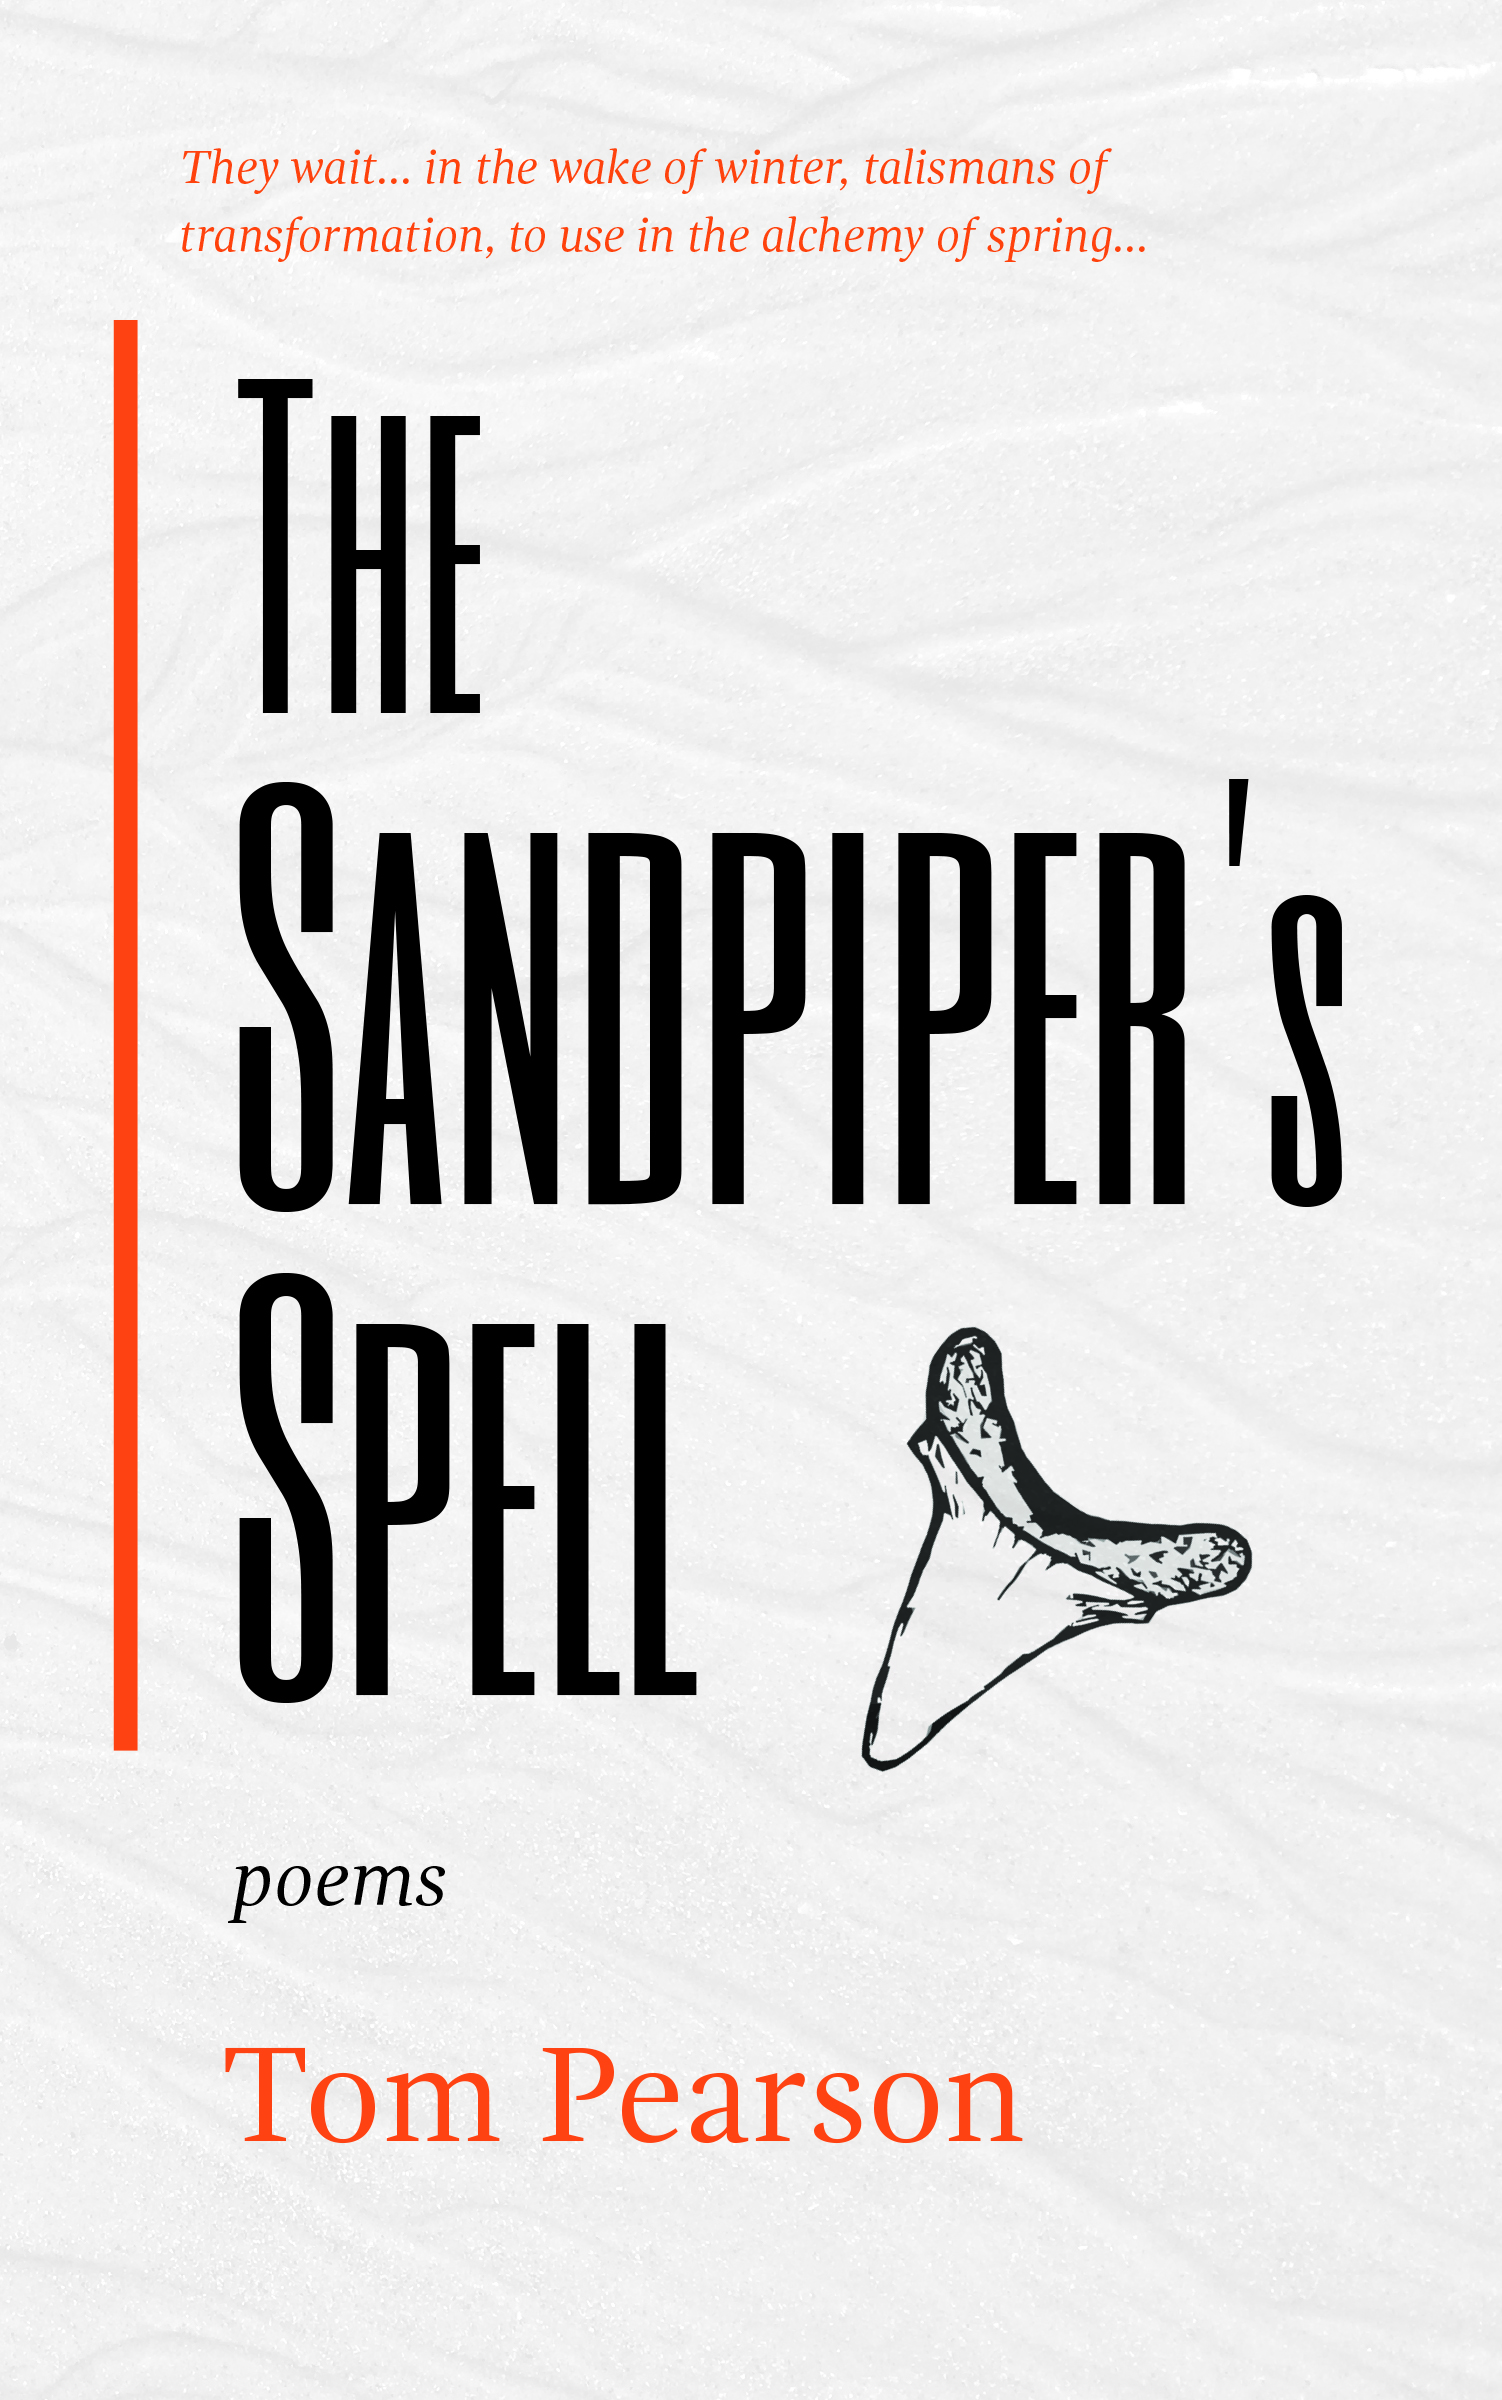 The Sandpiper' Spell - The Sandpiper's Spell      Normal   0               false   false   false      EN-US   JA   X-NONE                                                                                                                                                                                                                                                                                                                                                                                                                                                                                                                                                                                                                                                                                                                                                                                                                                                                                                                                                                                                                                                                                                                                                                                                                                                                          /* Style Definitions */  table.MsoNormalTable 	{mso-style-name: